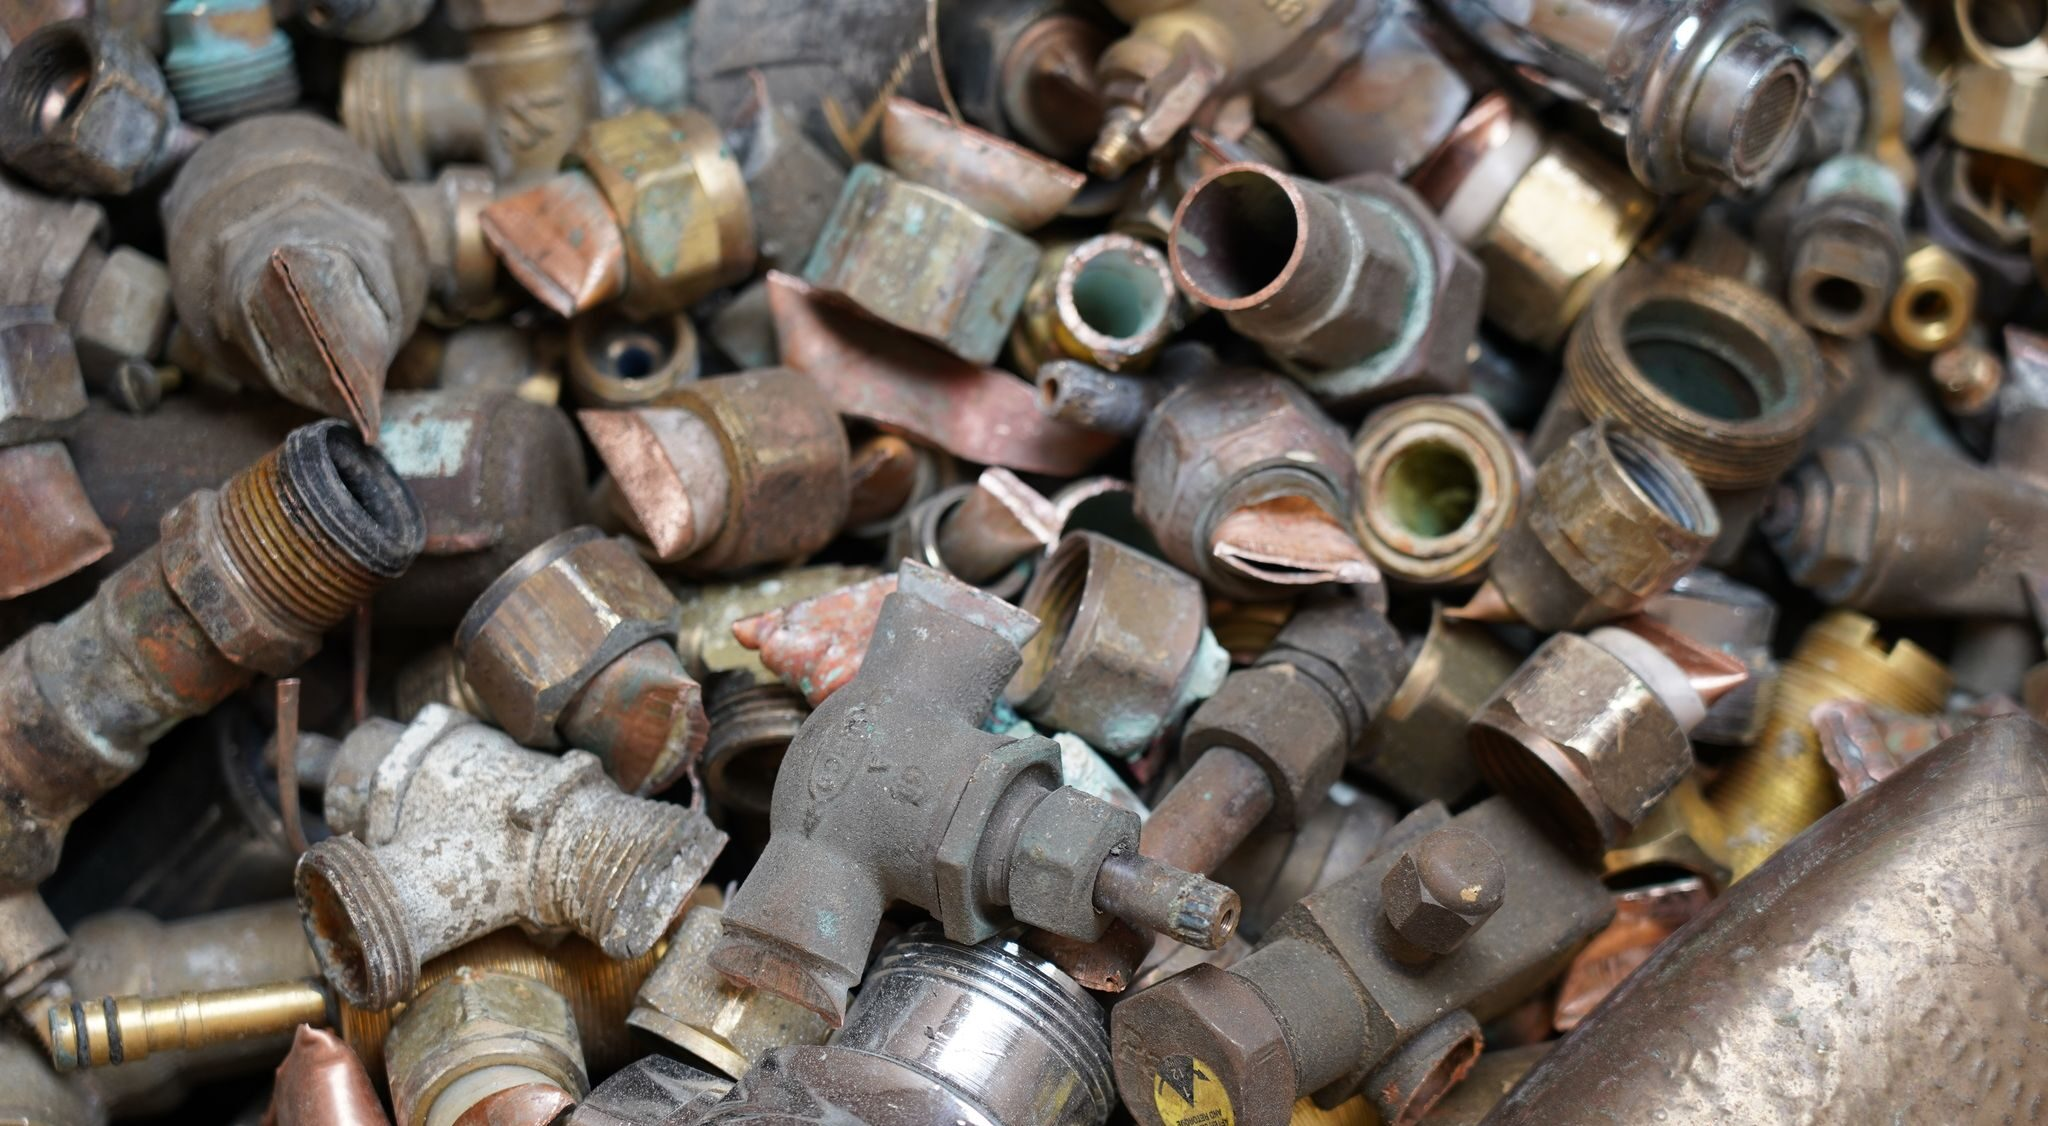 Looking for a Plano Metal Recycling Service?